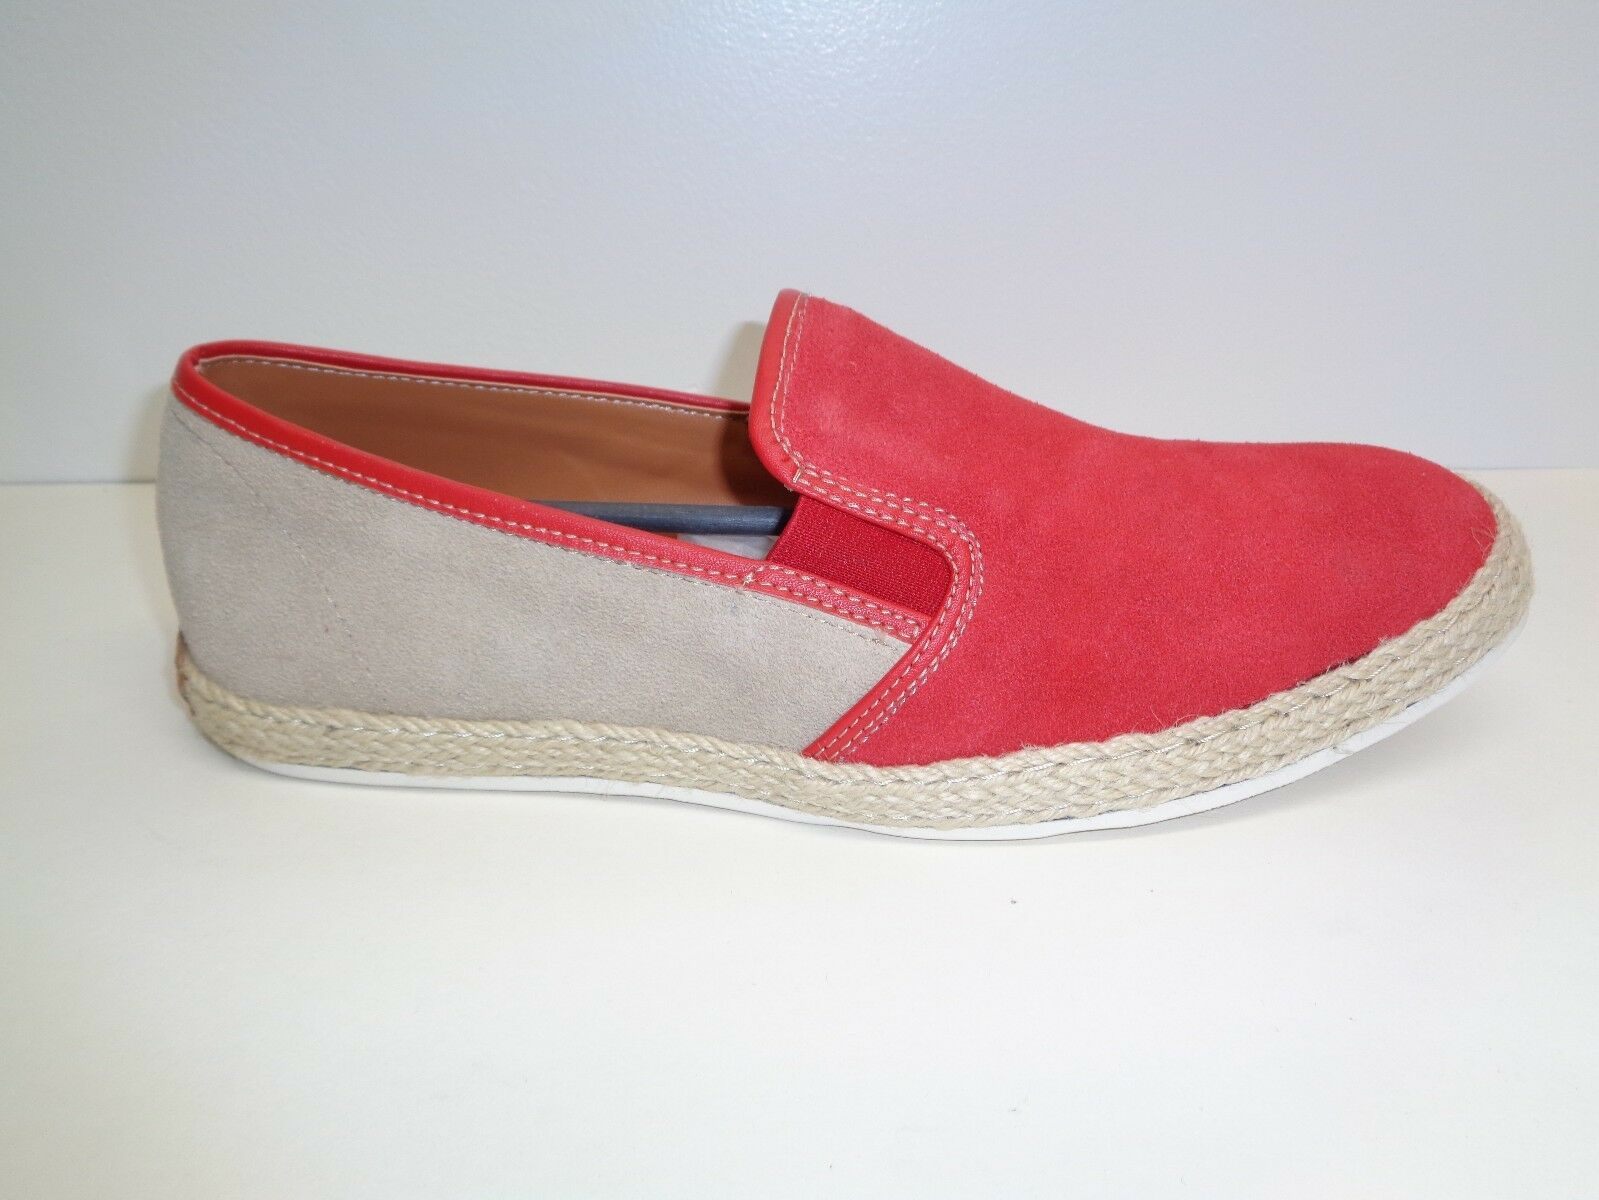 Steve Madden Size 10 M HAMOCK Rosso Suede Slip On Loafers New Uomo Shoes